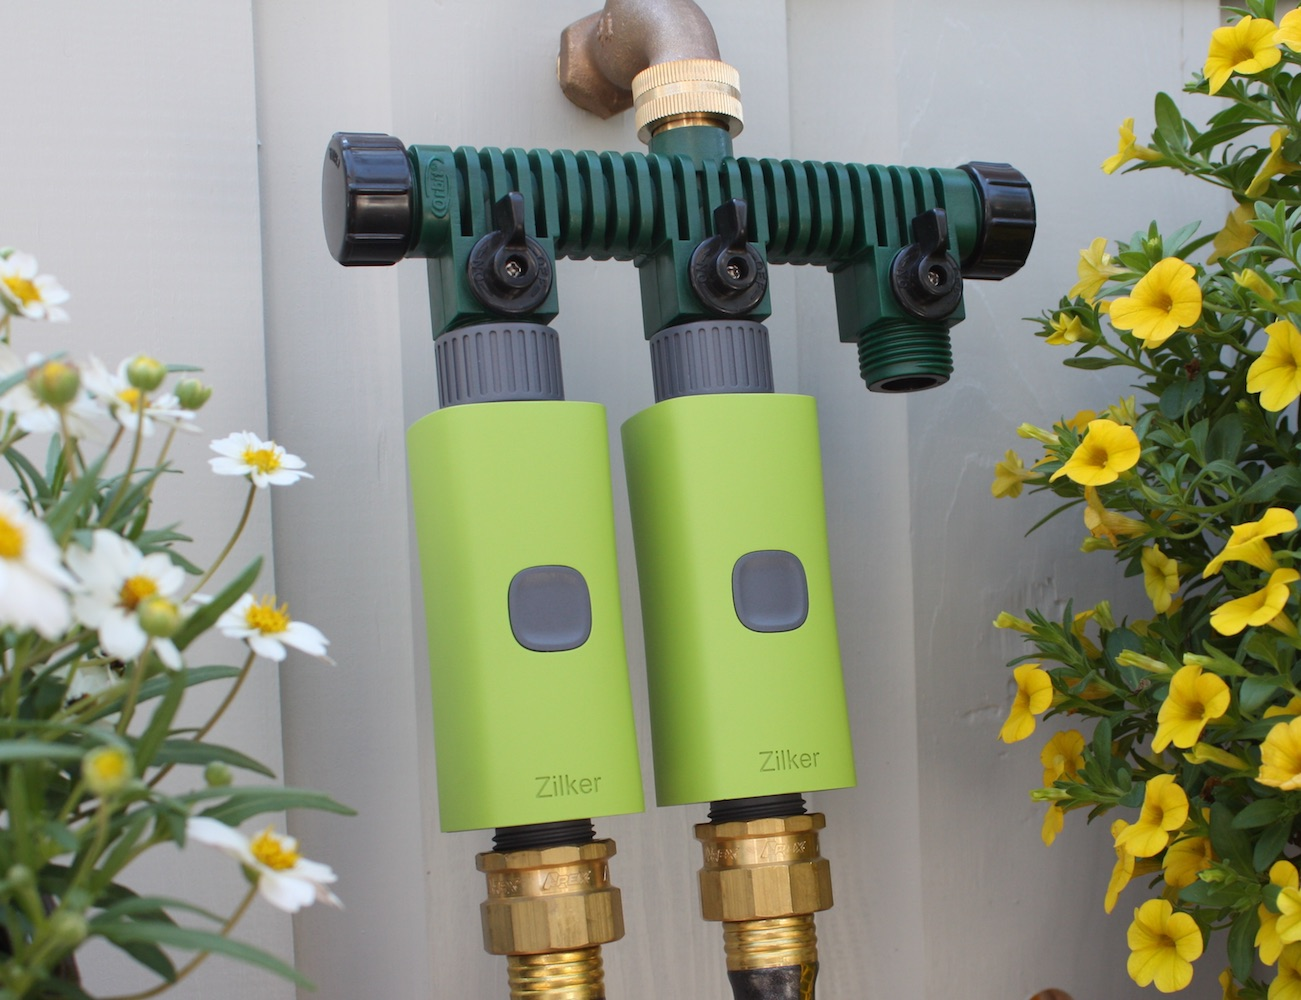 Zilker Intelligent Irrigation Device